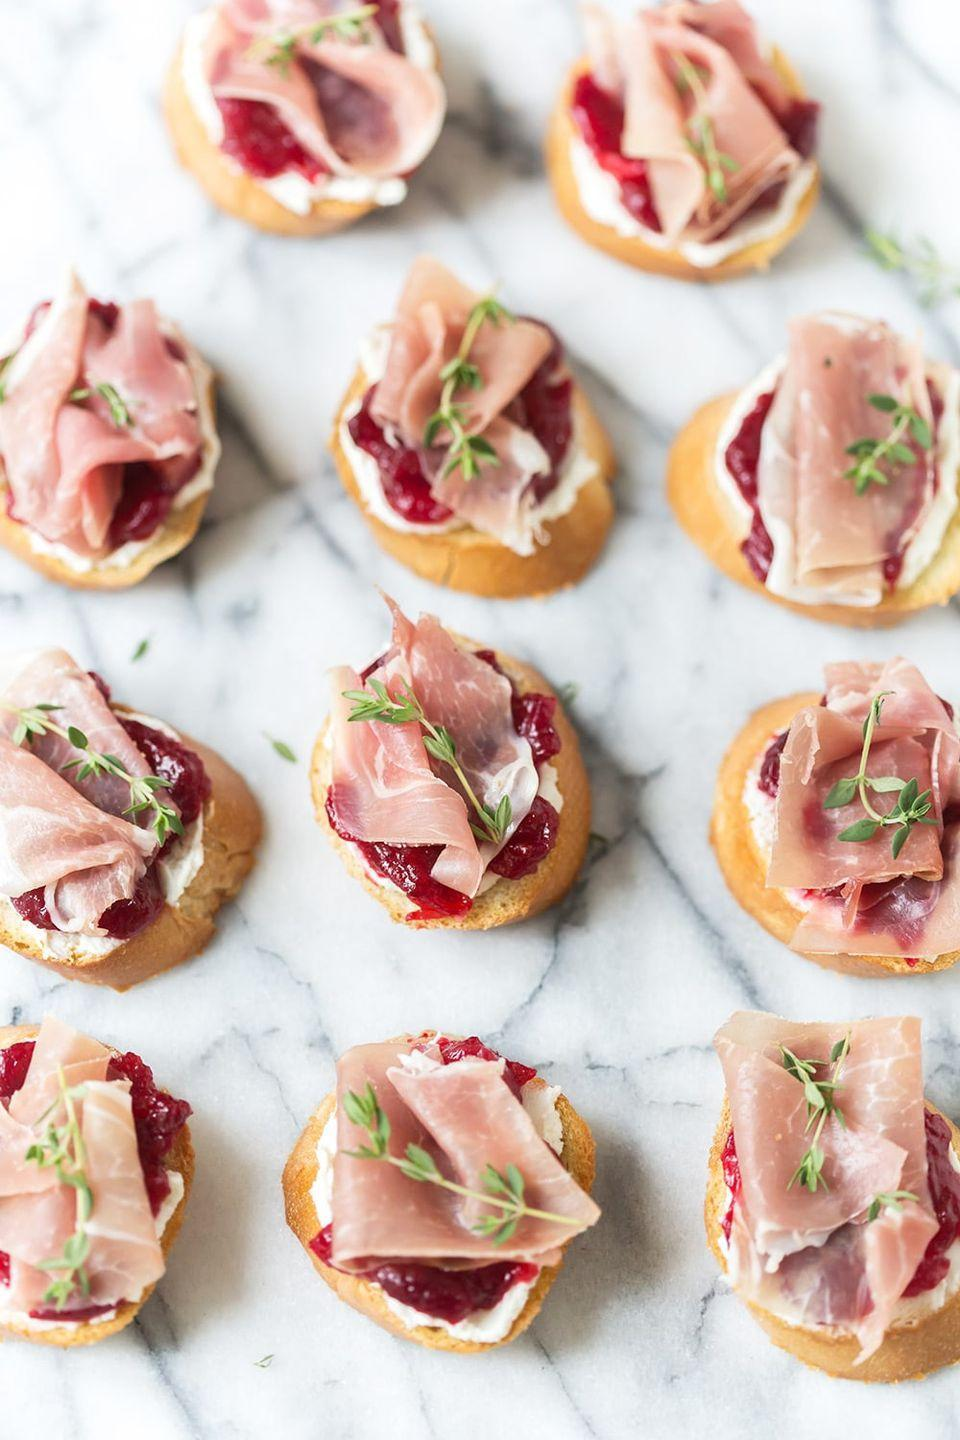 """<p>Make some extra cranberry sauce to use for this hand-held starter. It'll add a hint of tartness to the goat cheese and prosciutto crostini. </p><p><strong>Get the recipe at <a href=""""https://pizzazzerie.com/recipes/cranberry-prosciutto-crostini/"""" rel=""""nofollow noopener"""" target=""""_blank"""" data-ylk=""""slk:Pizzazzerie"""" class=""""link rapid-noclick-resp"""">Pizzazzerie</a>.</strong></p>"""